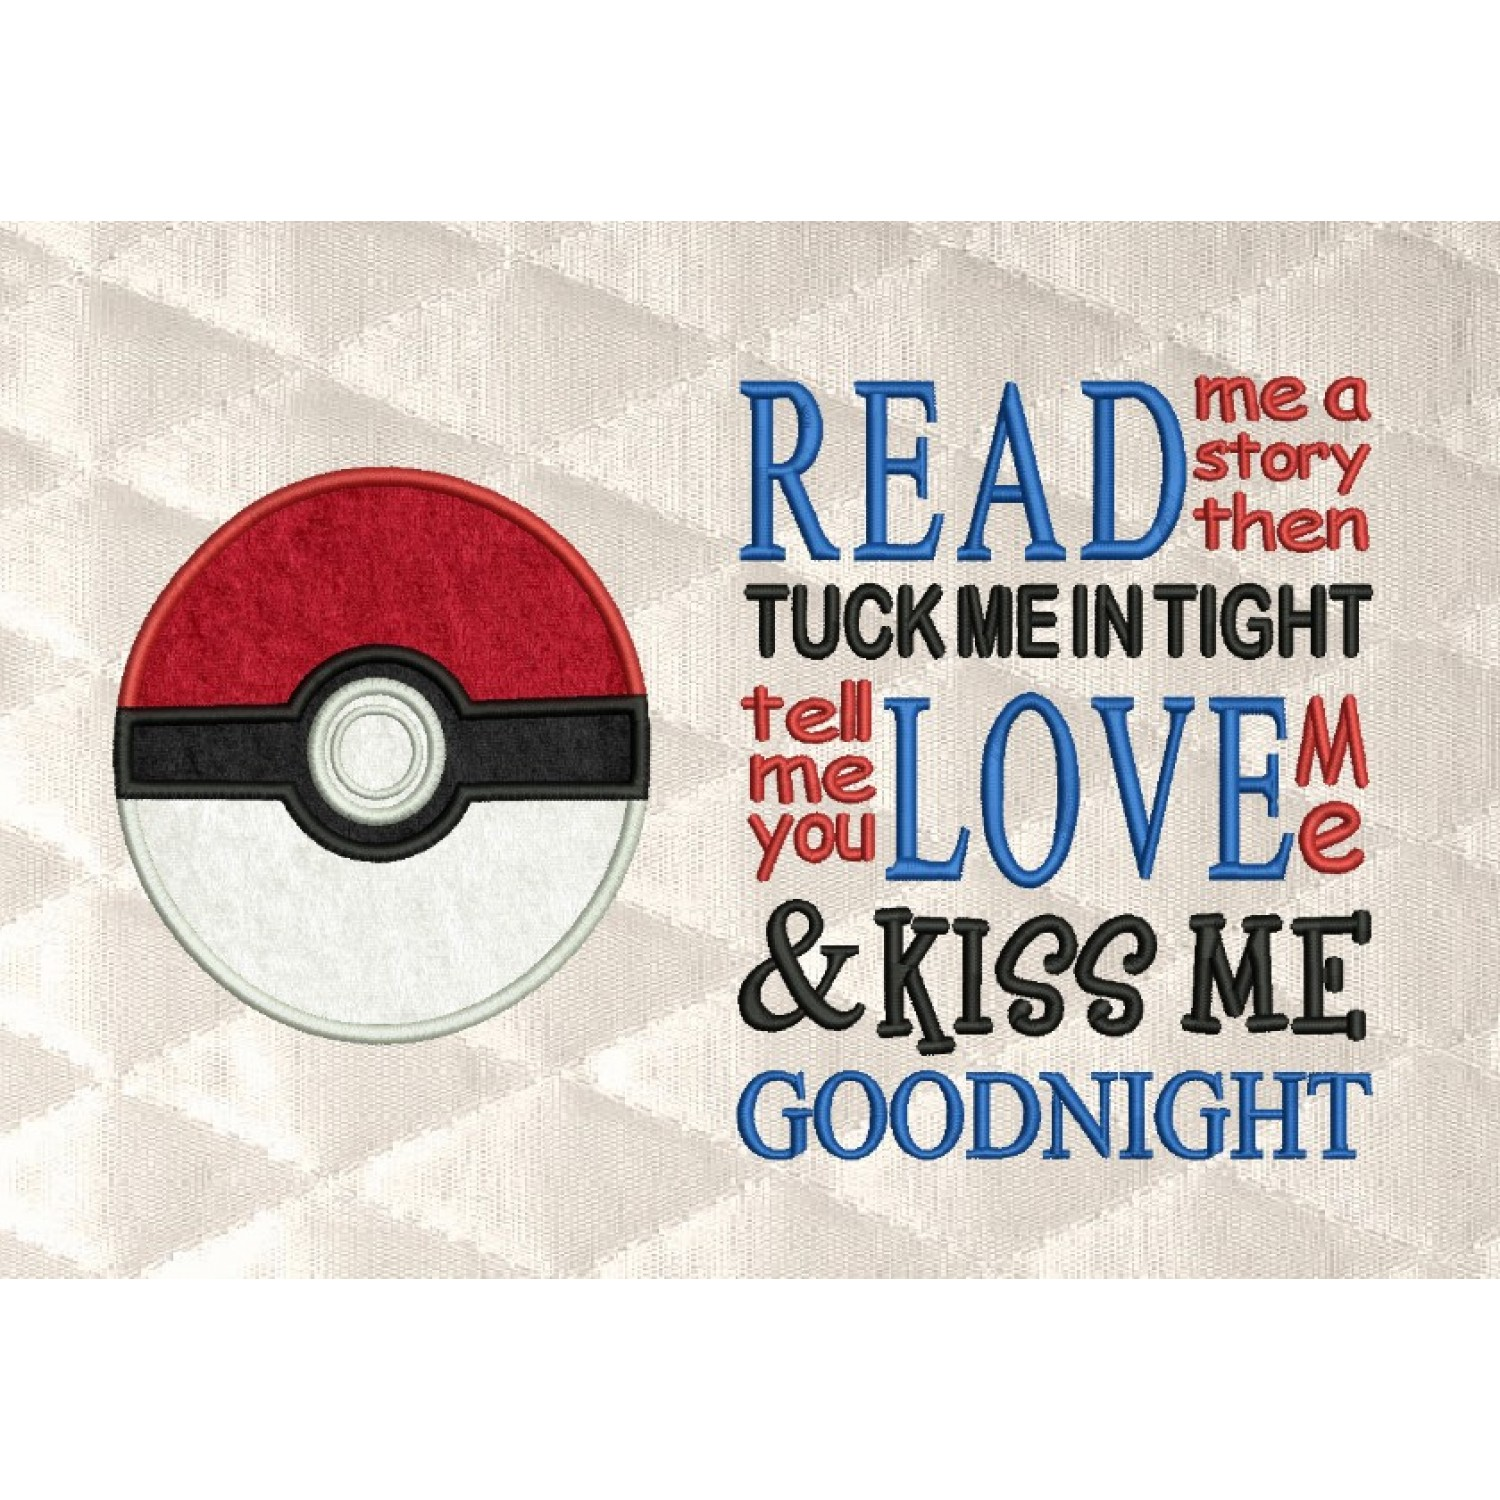 pokeball pokemon with read me a story